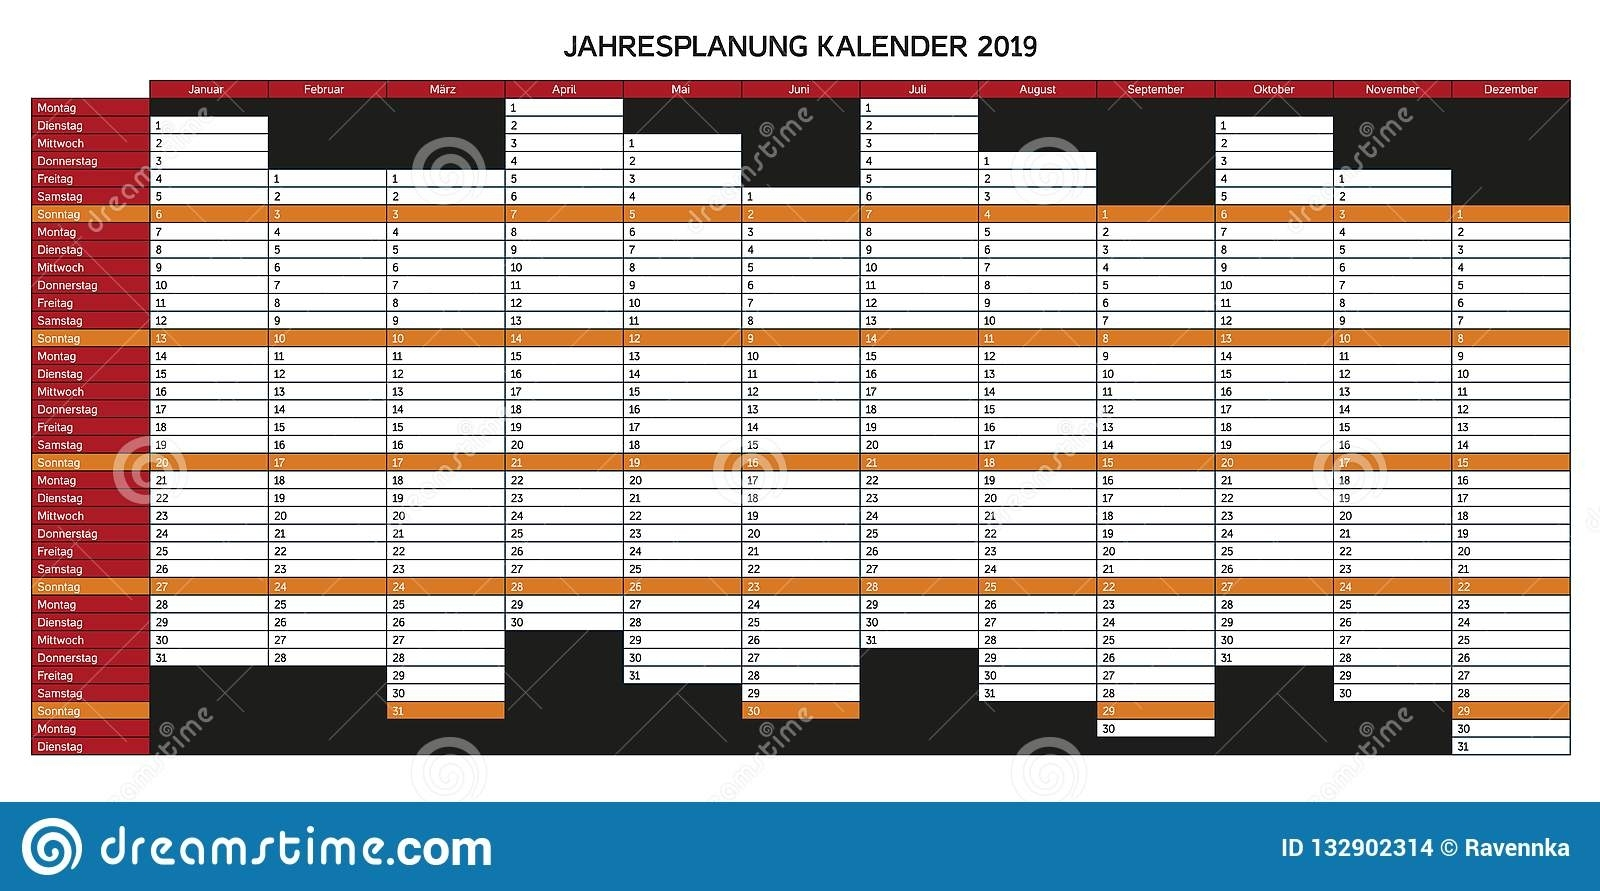 Year Planning Calendar For 2019 In German - Jahresplanung